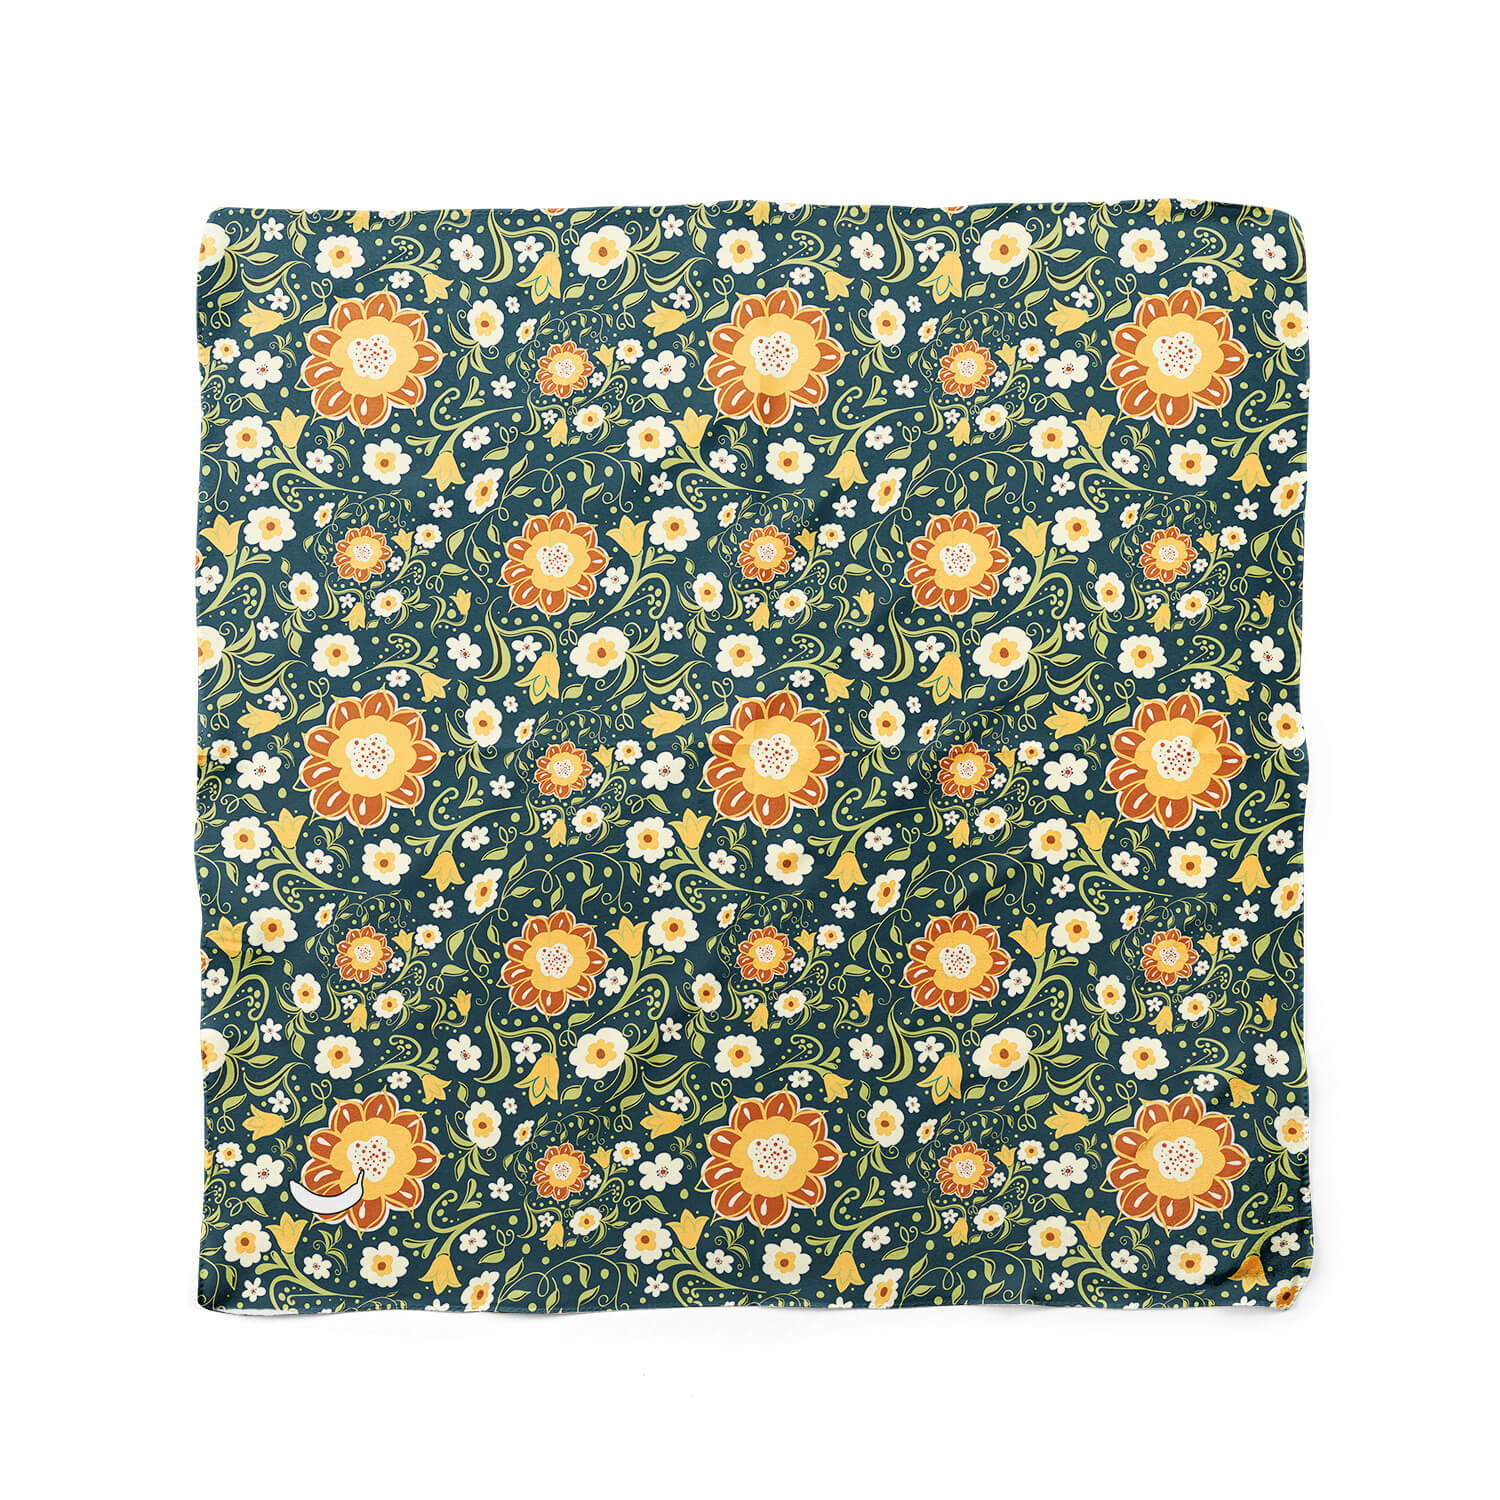 Banana Bandanas Flower Power hippy dog bandana flat photo